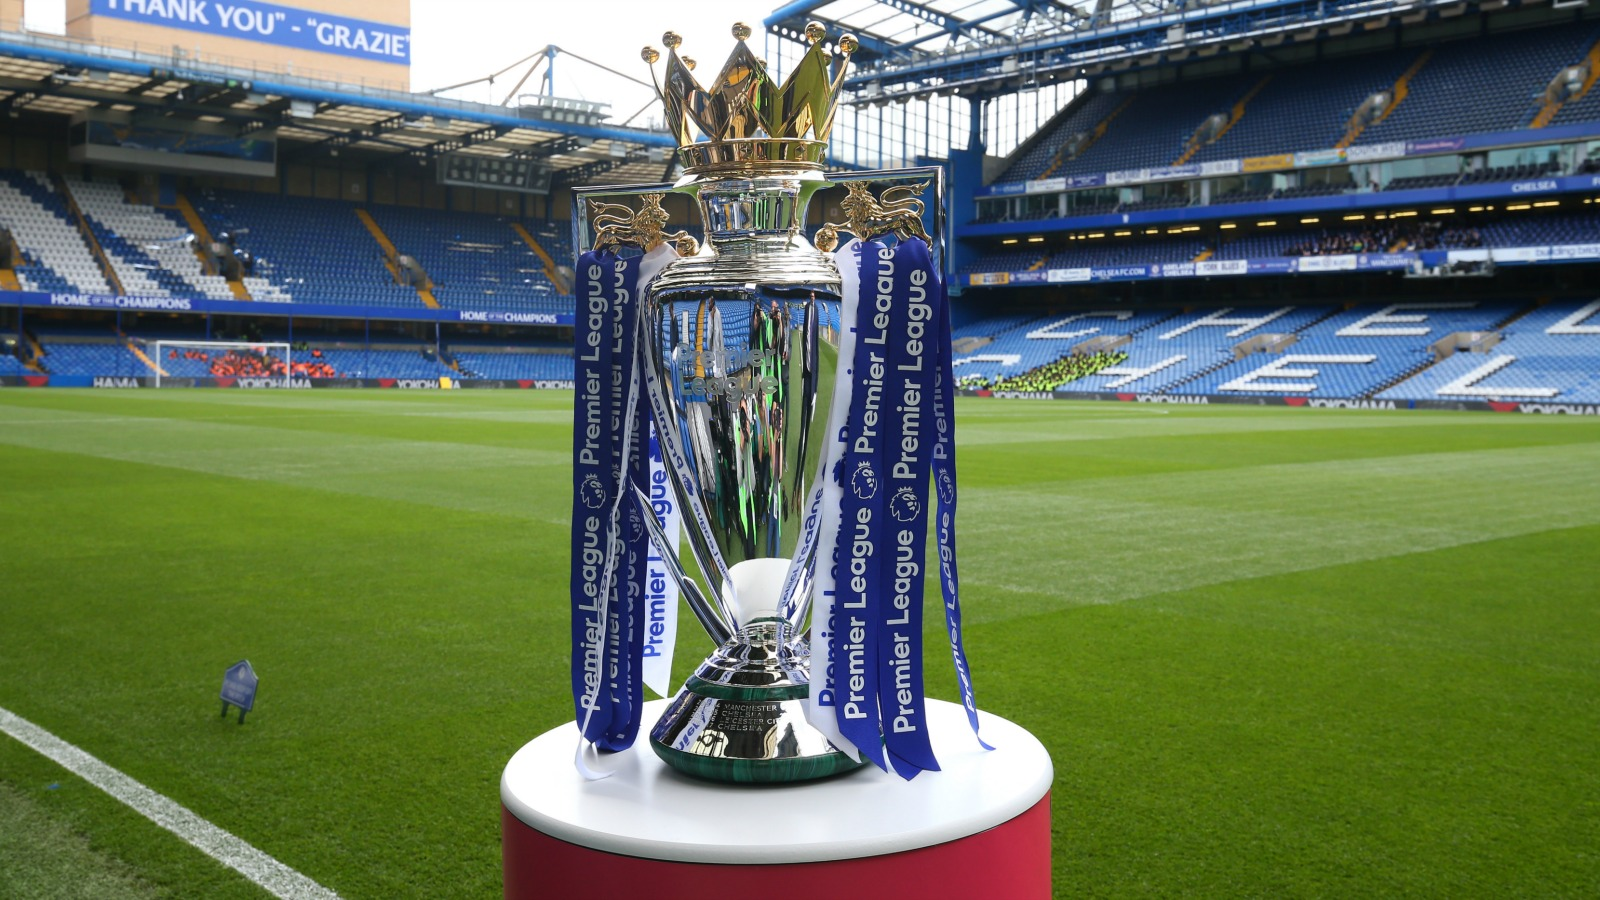 061117-EPL-Premier-League-trophy